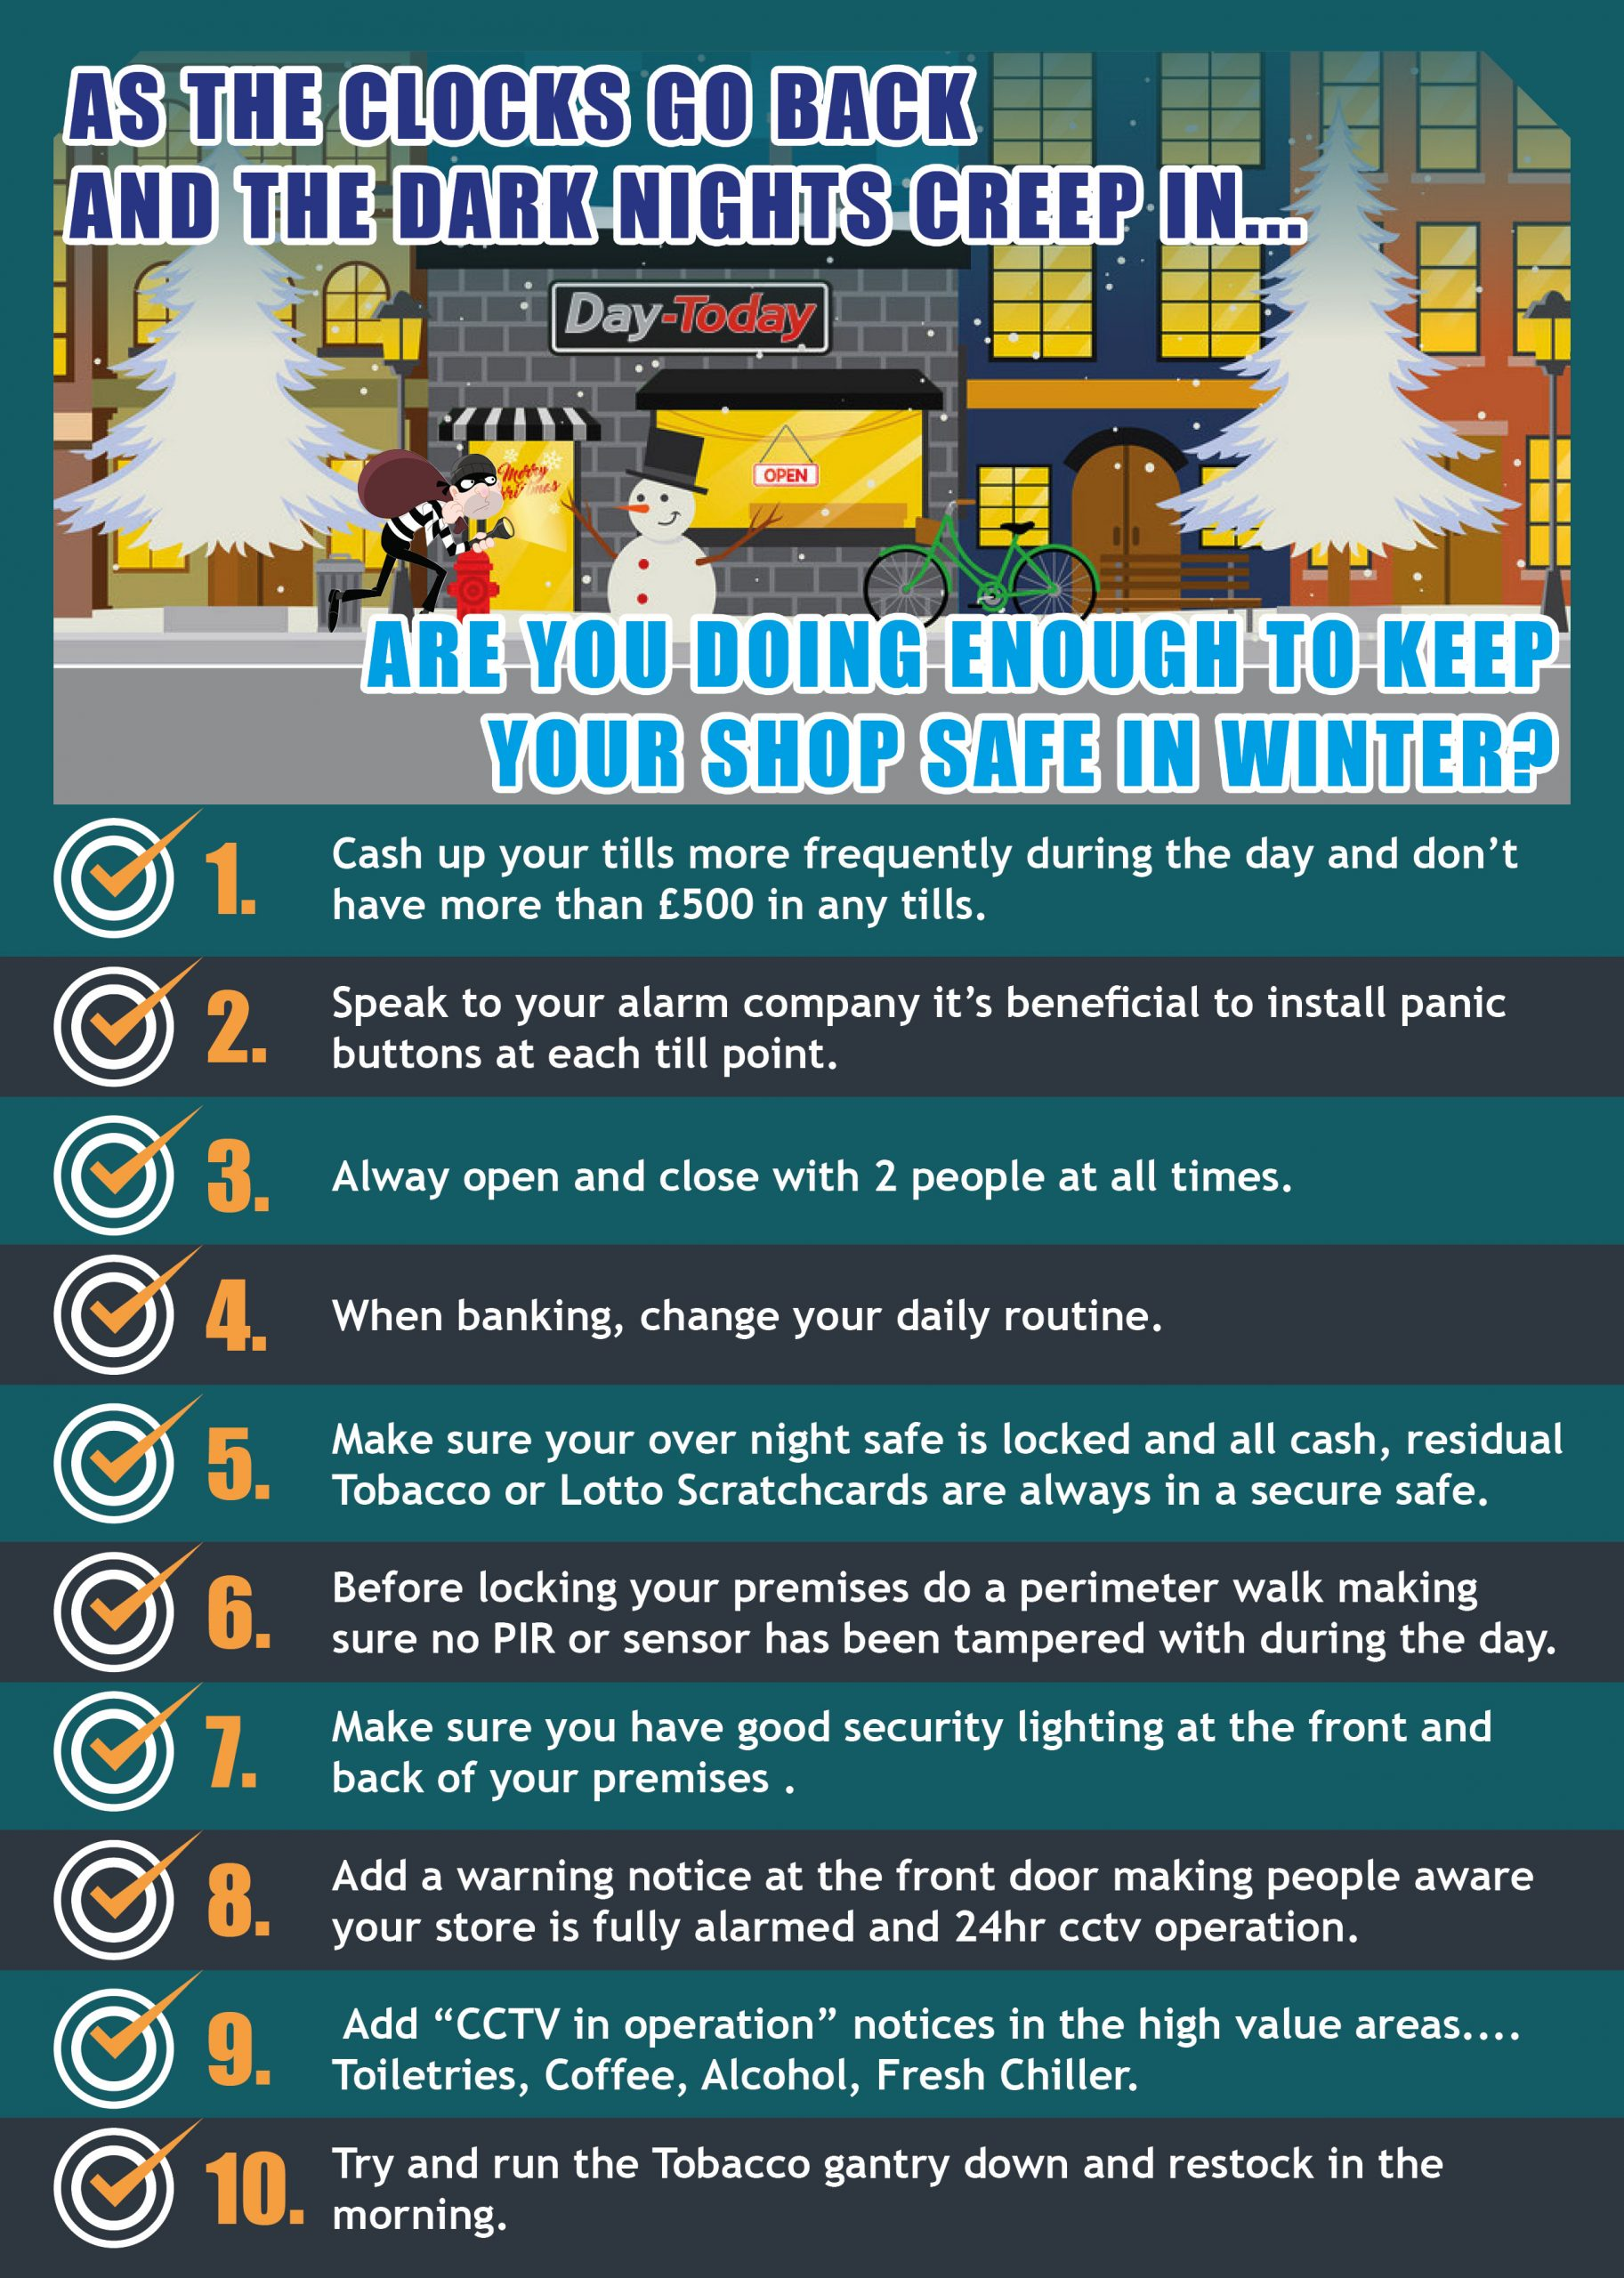 Keep your shop safe in winter; security guidelines